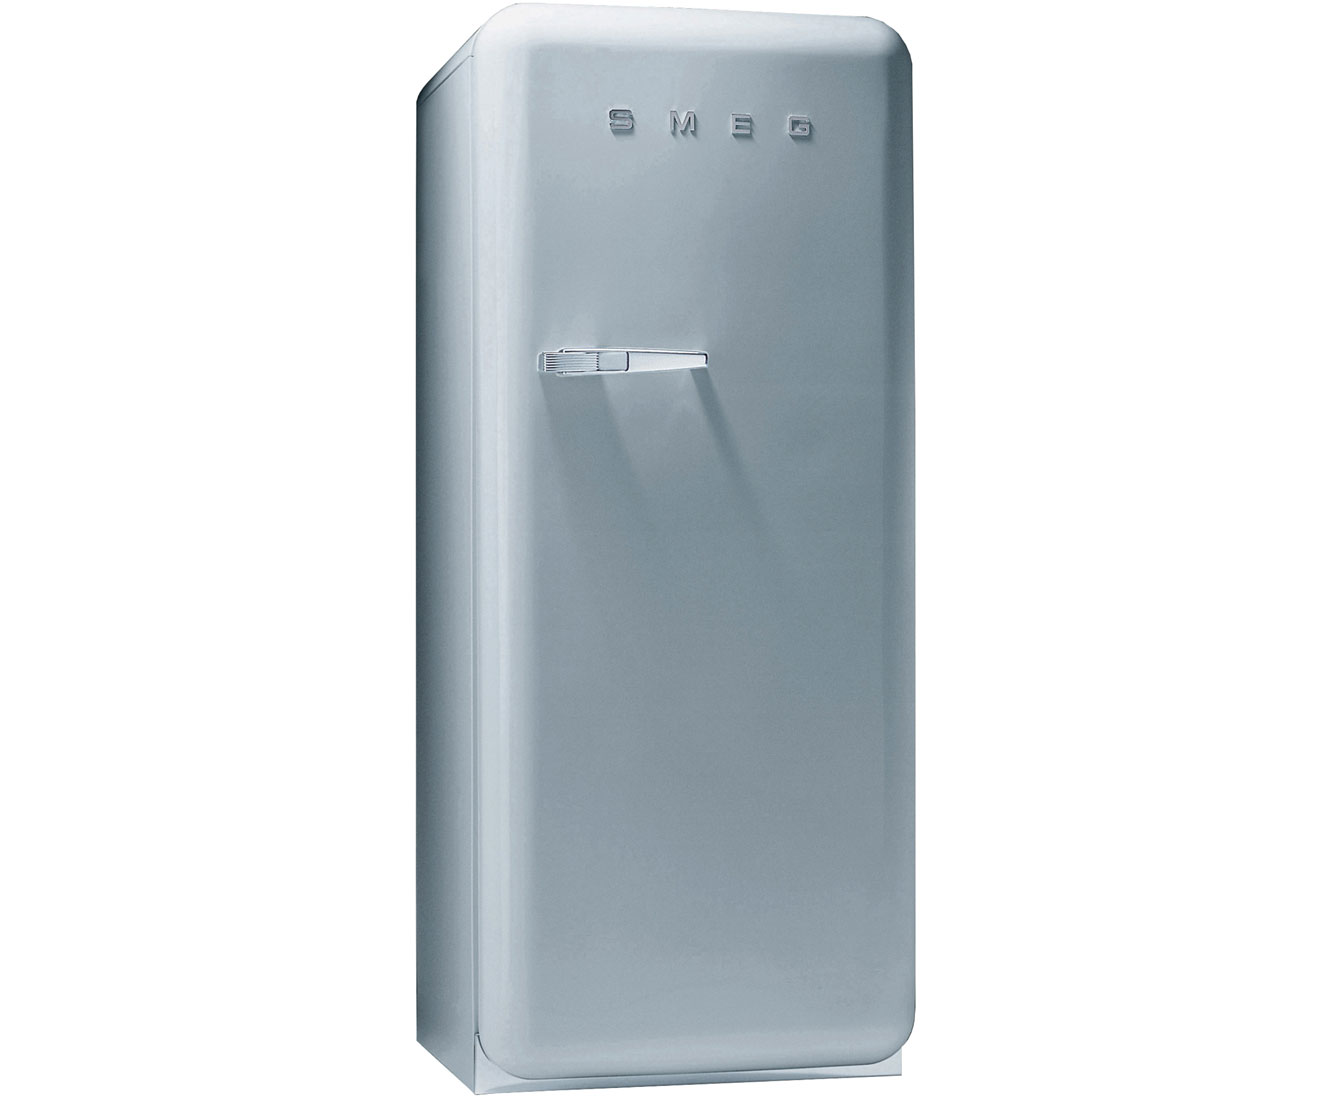 Smeg Right Hand Hinge FAB28QX1 Fridge with Ice Box - Silver